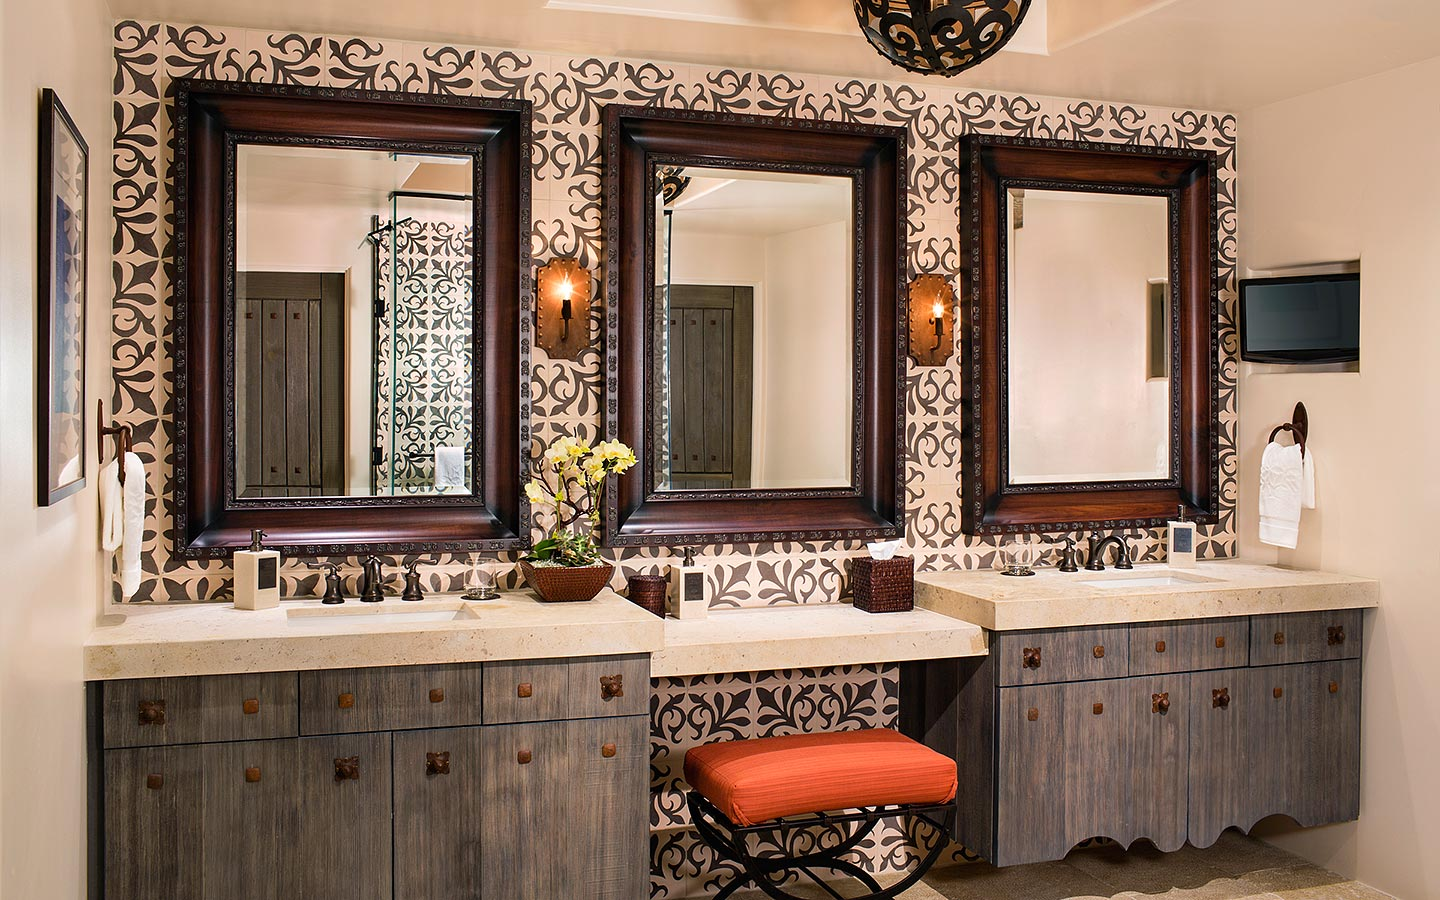 San Diego luxury hotel bathroom with beautiful spanish tile and his and hers vanity